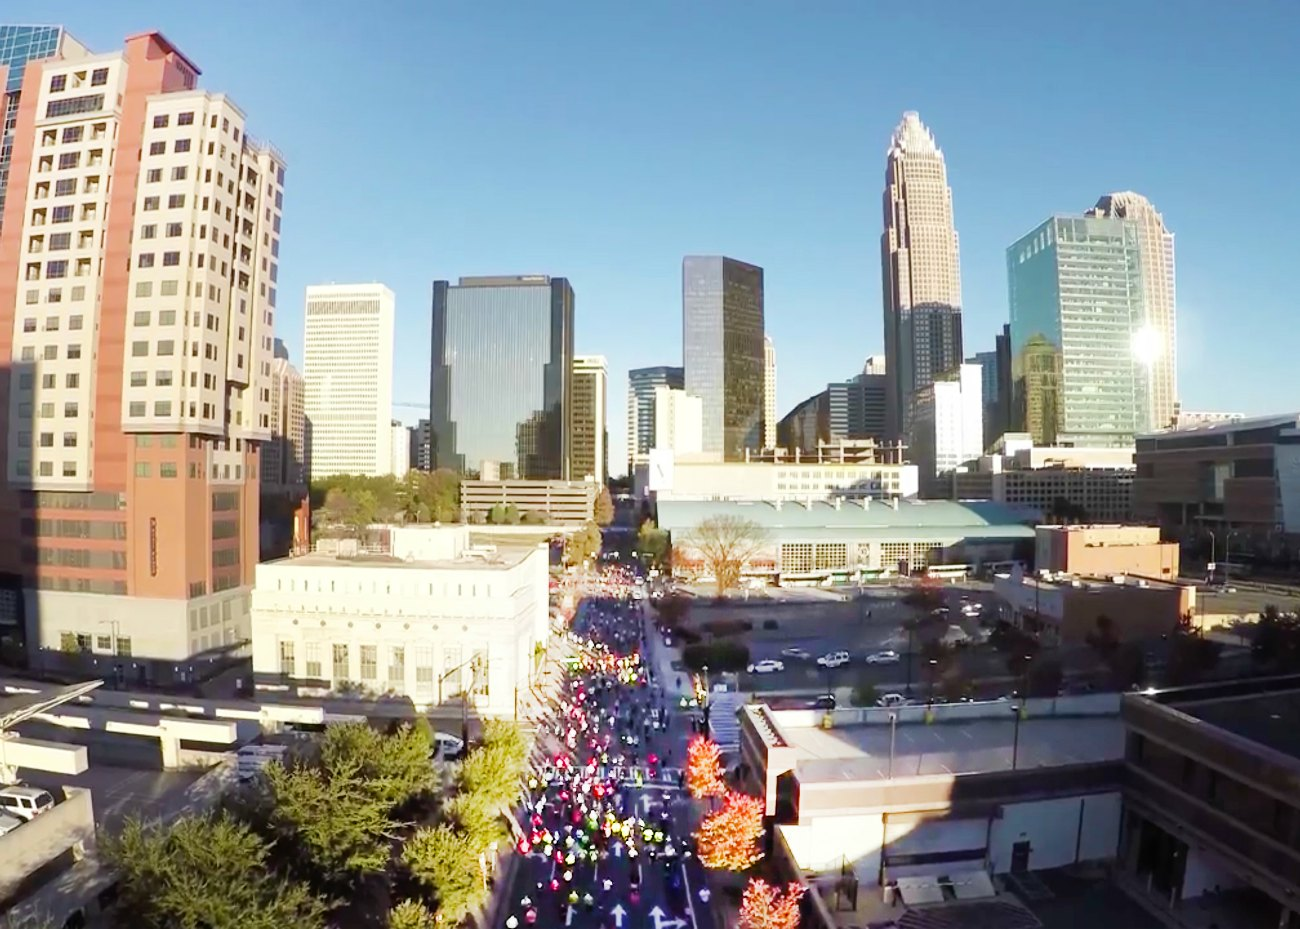 Training resources for Charlotte Marathon runners